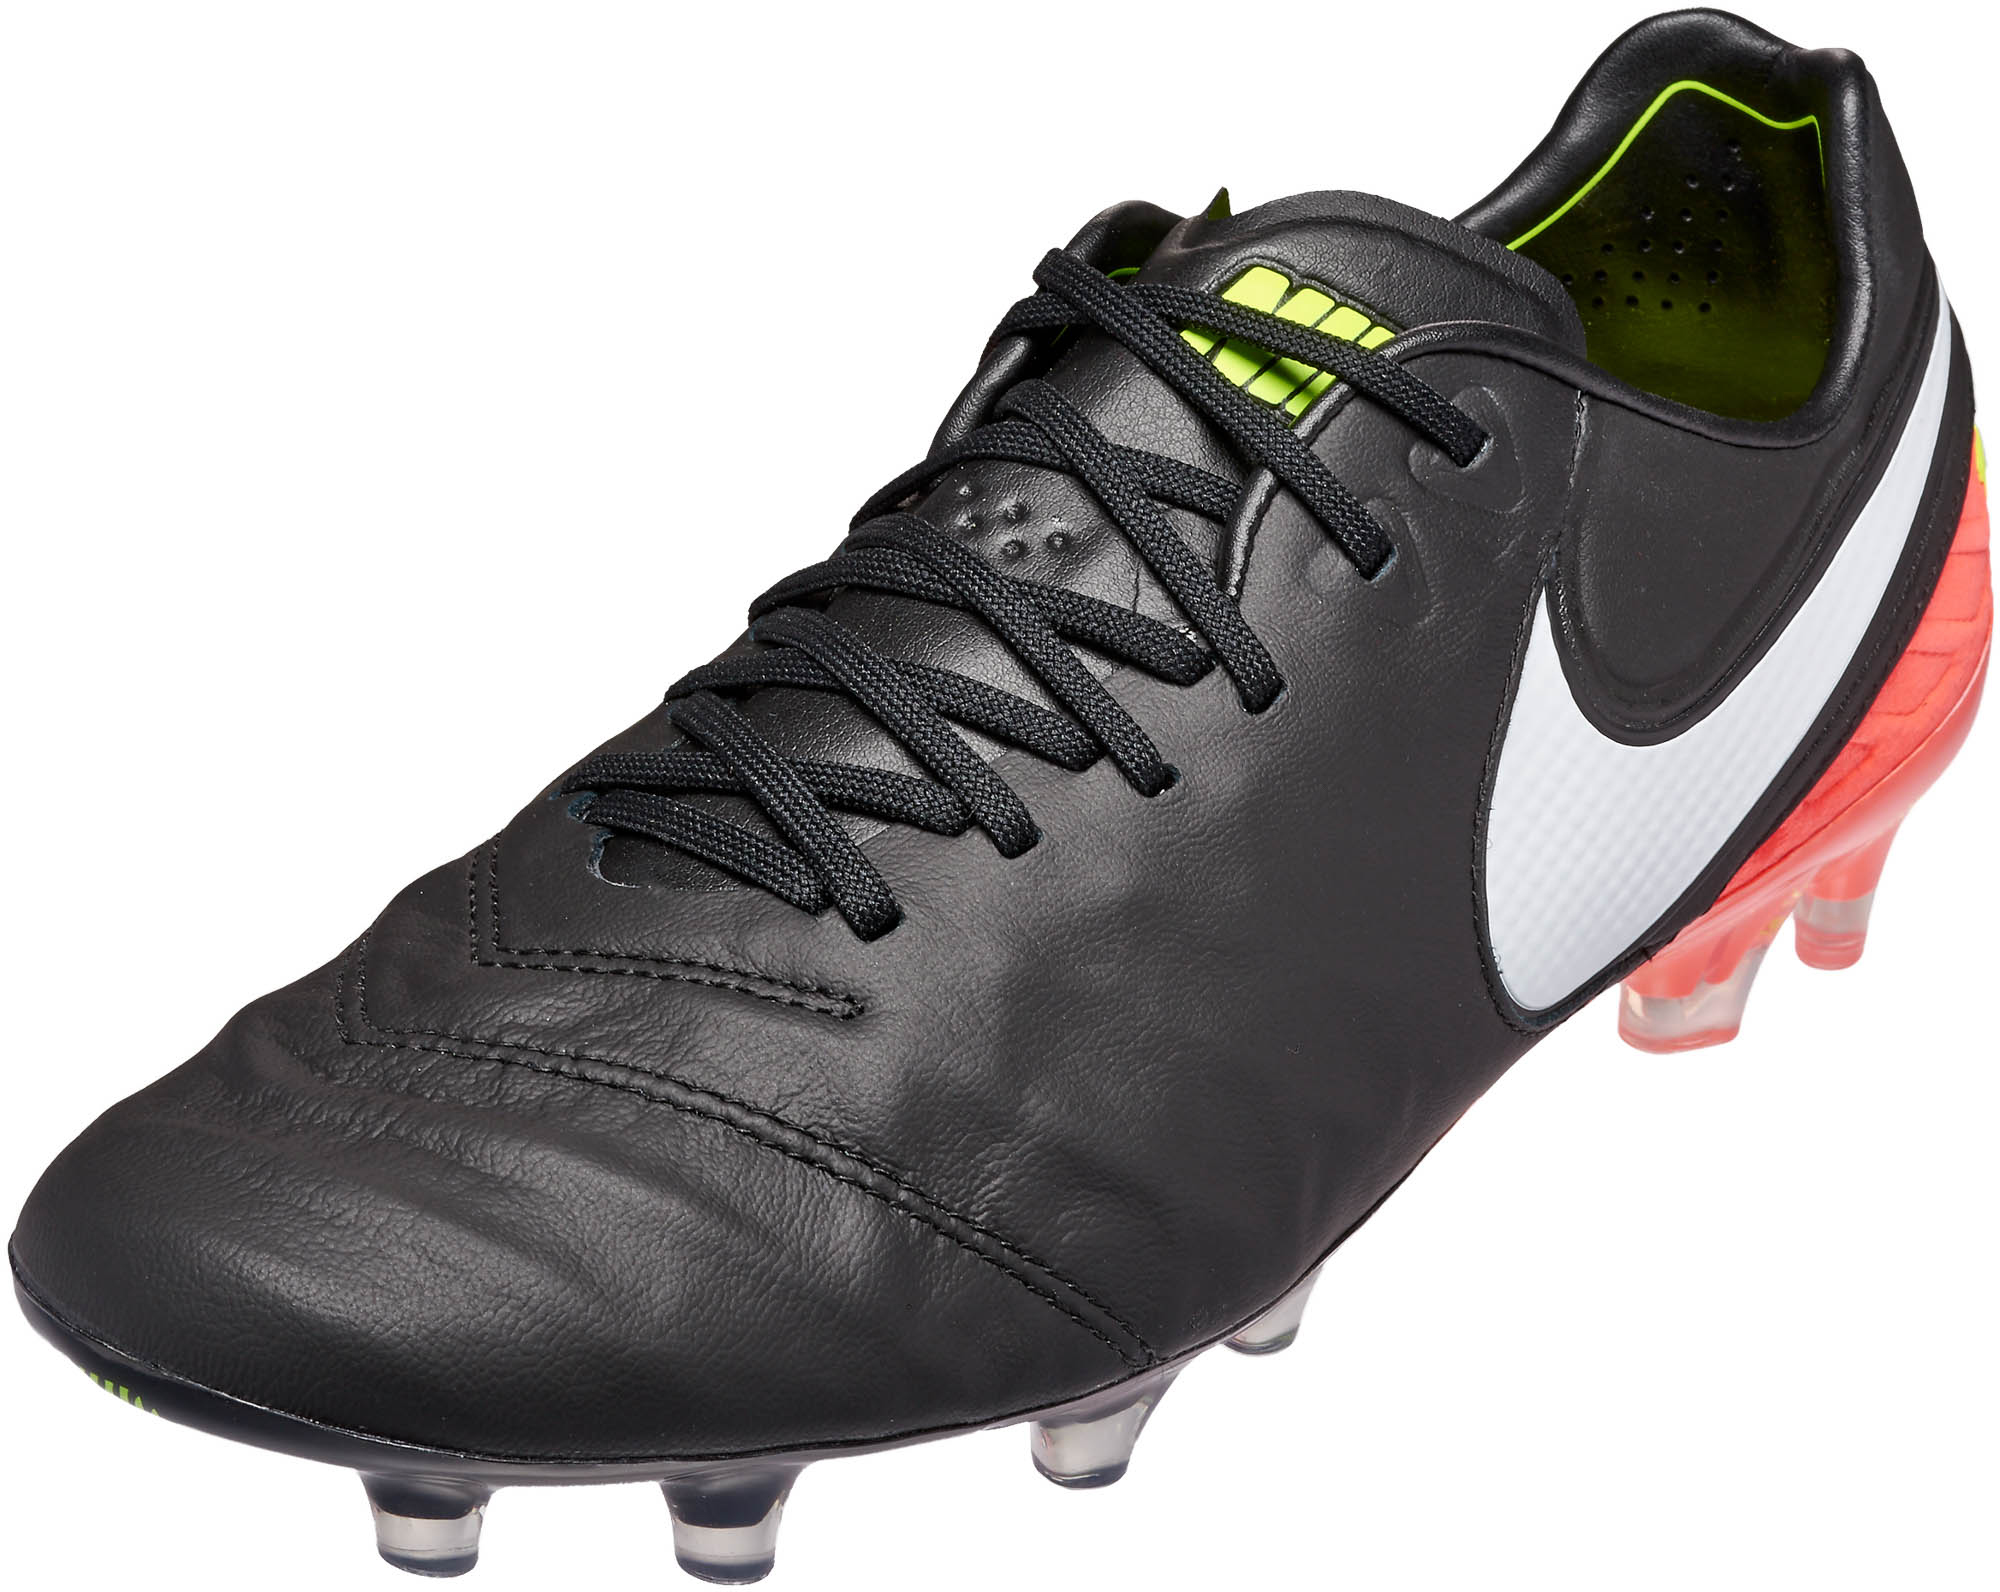 Nike Tiempo Legend VI FG - Black and Hyper Orange Nike ...